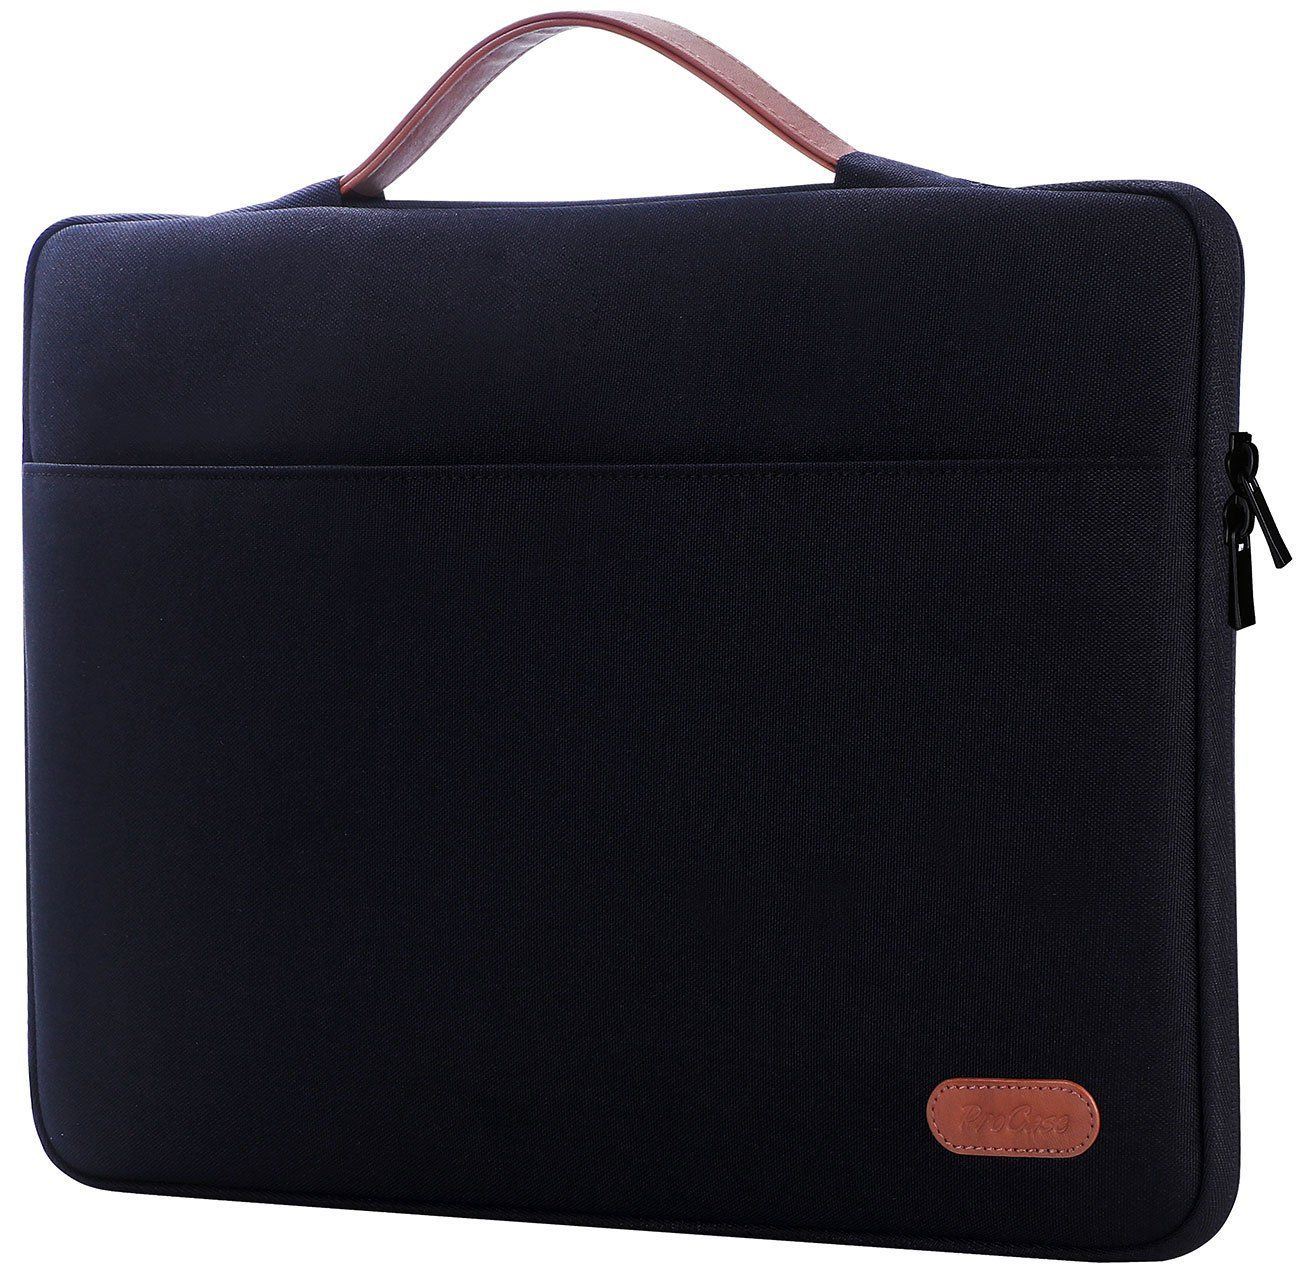 Amazon Com Procase 13 13 5 Inch Laptop Sleeve Cover Bag For Surface Book Macbook Pro Air Macbook Pro Cover Macbook Pro 13 Case Sleeve Macbook Pro 13 Case